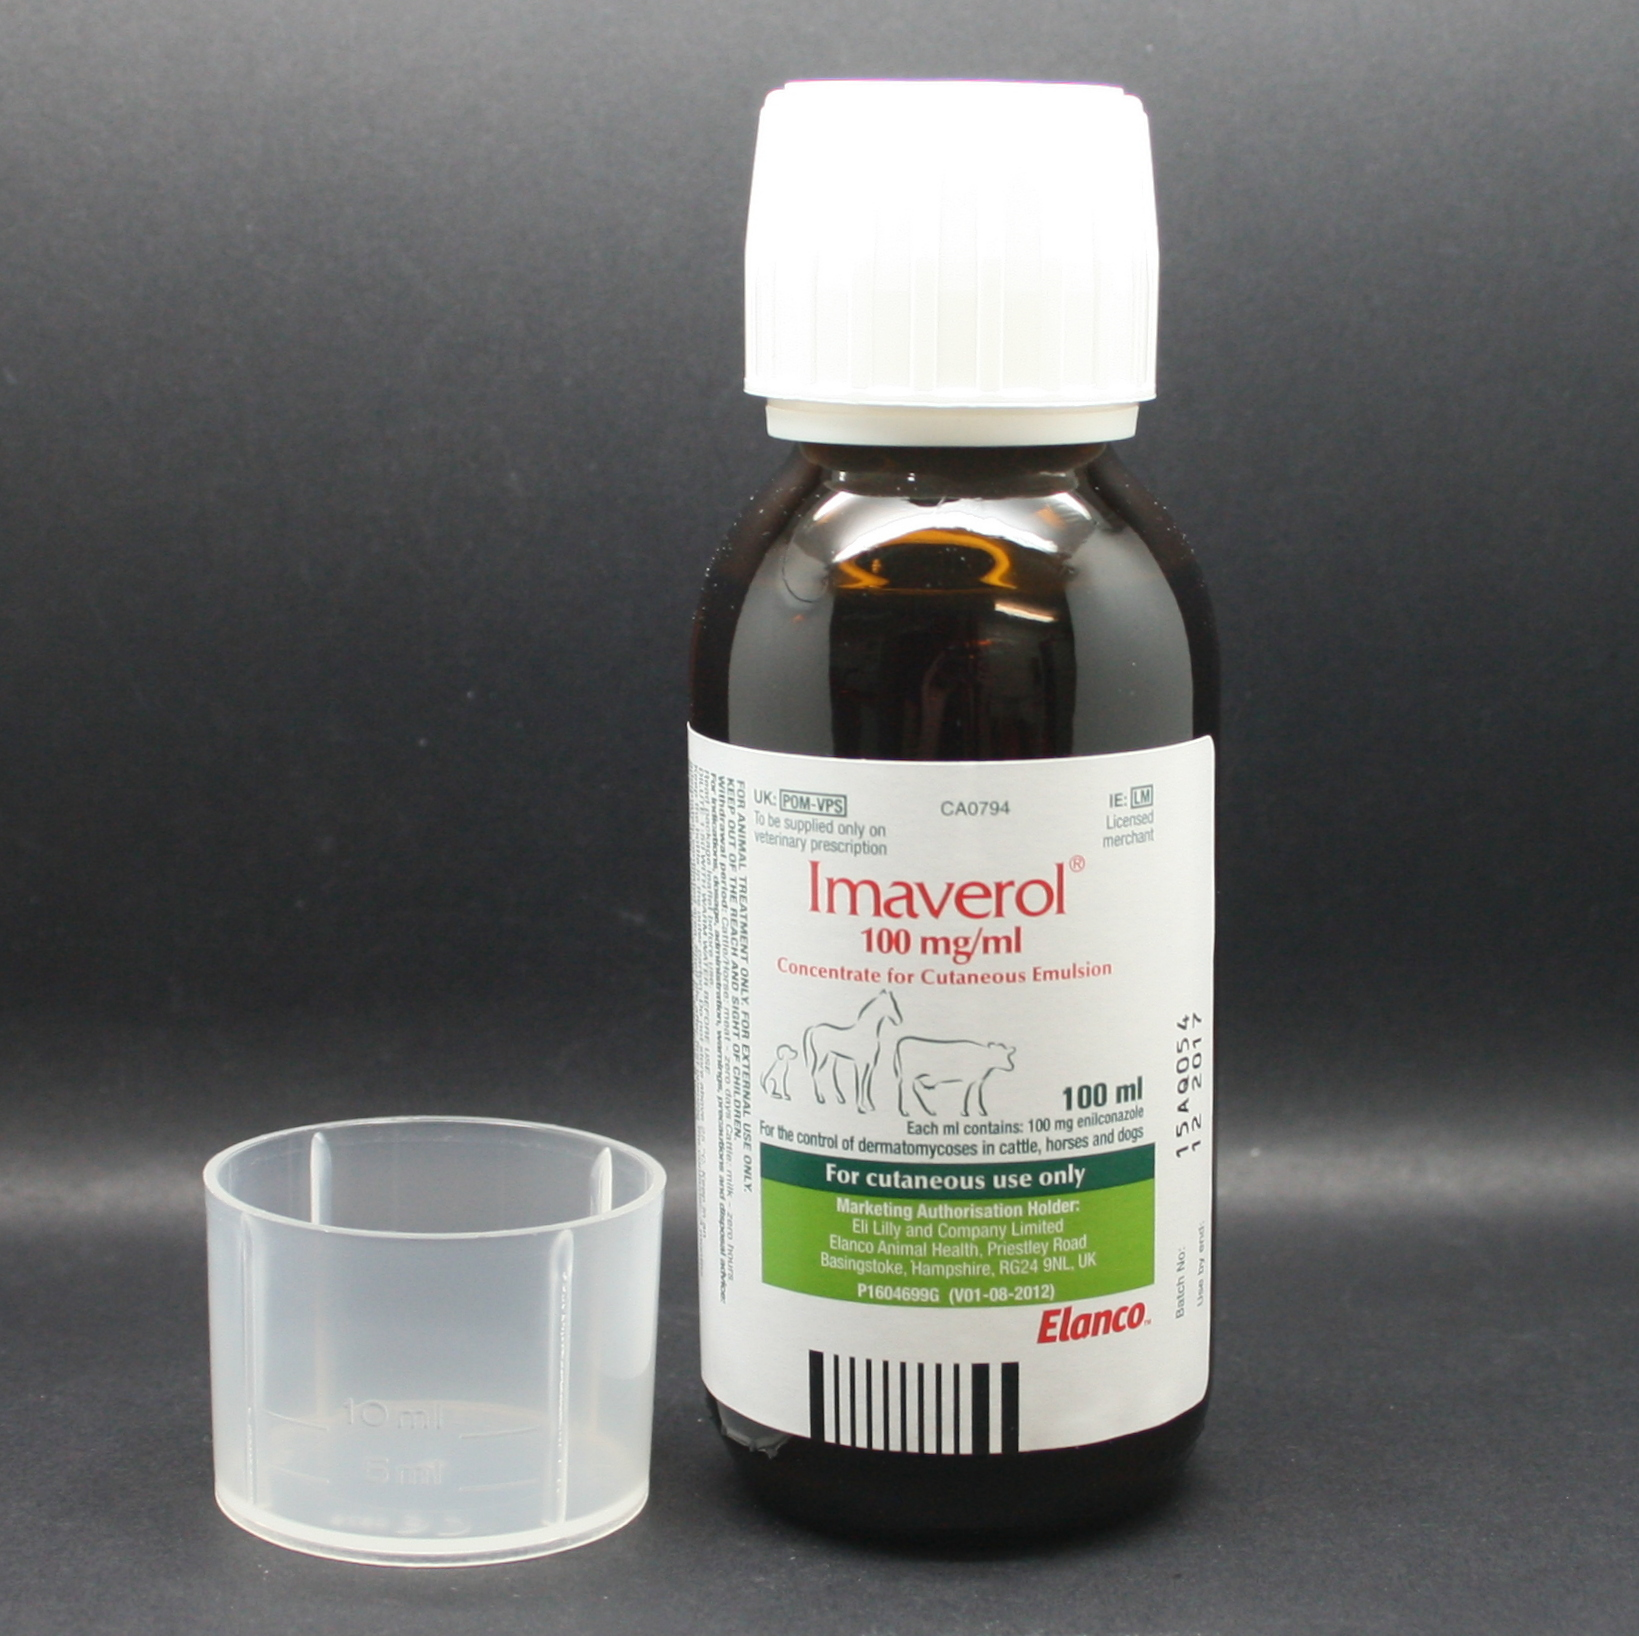 Imaverol 100mg/ml Concentrate 100ml